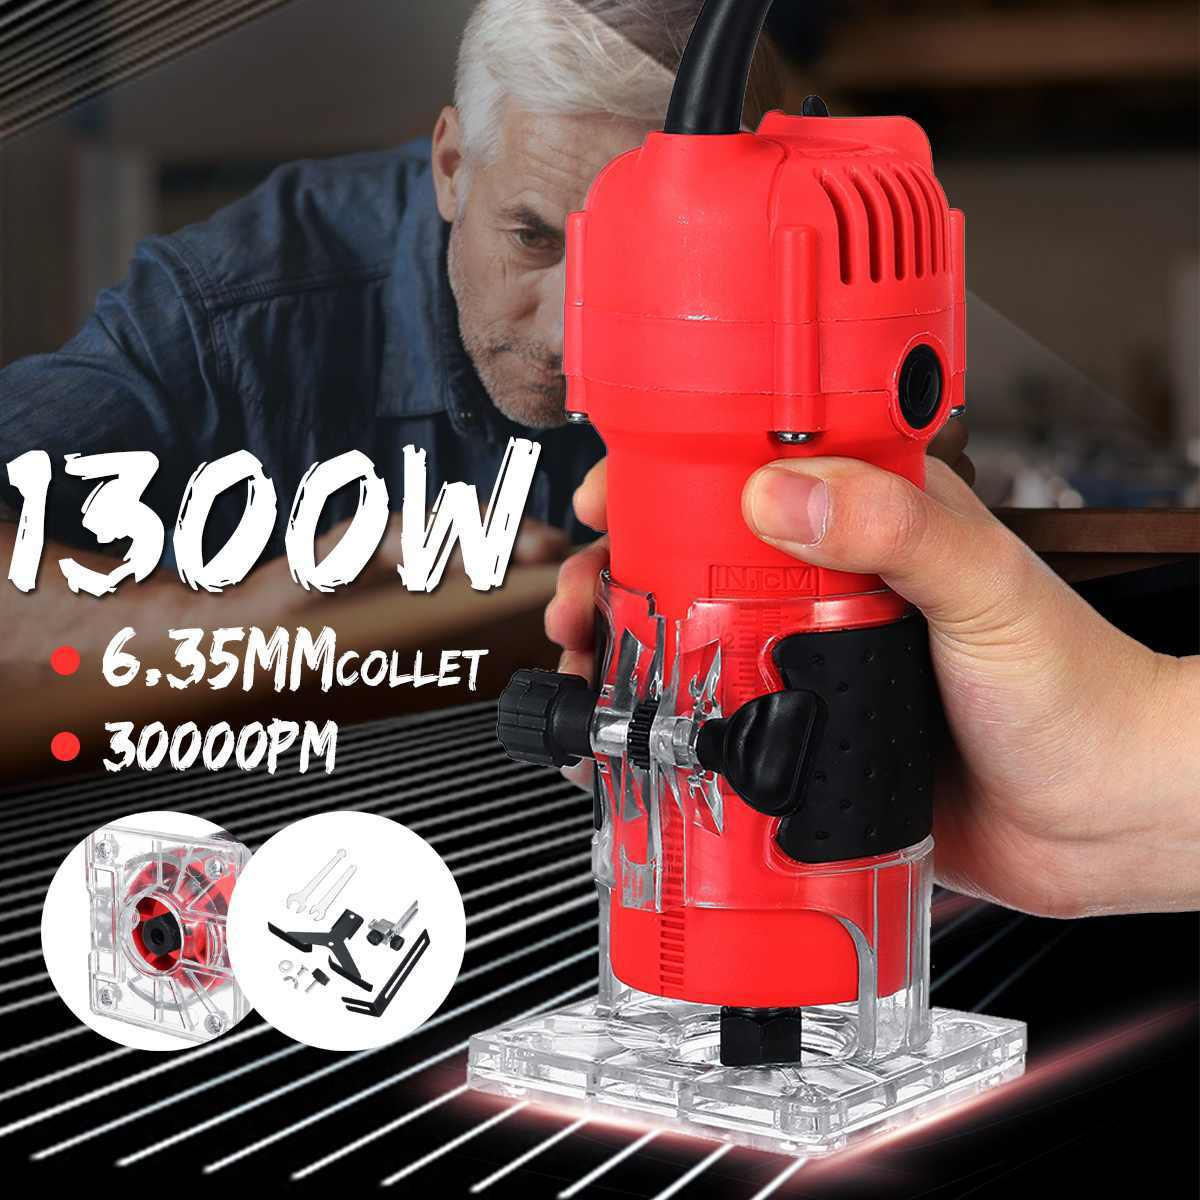 30000RPM 220V 110V 1300W 6.35mm Electric Hand Trimmer Wood Laminate Palms Wood Router Joiners Hand Carving Machine Woodwork Tool